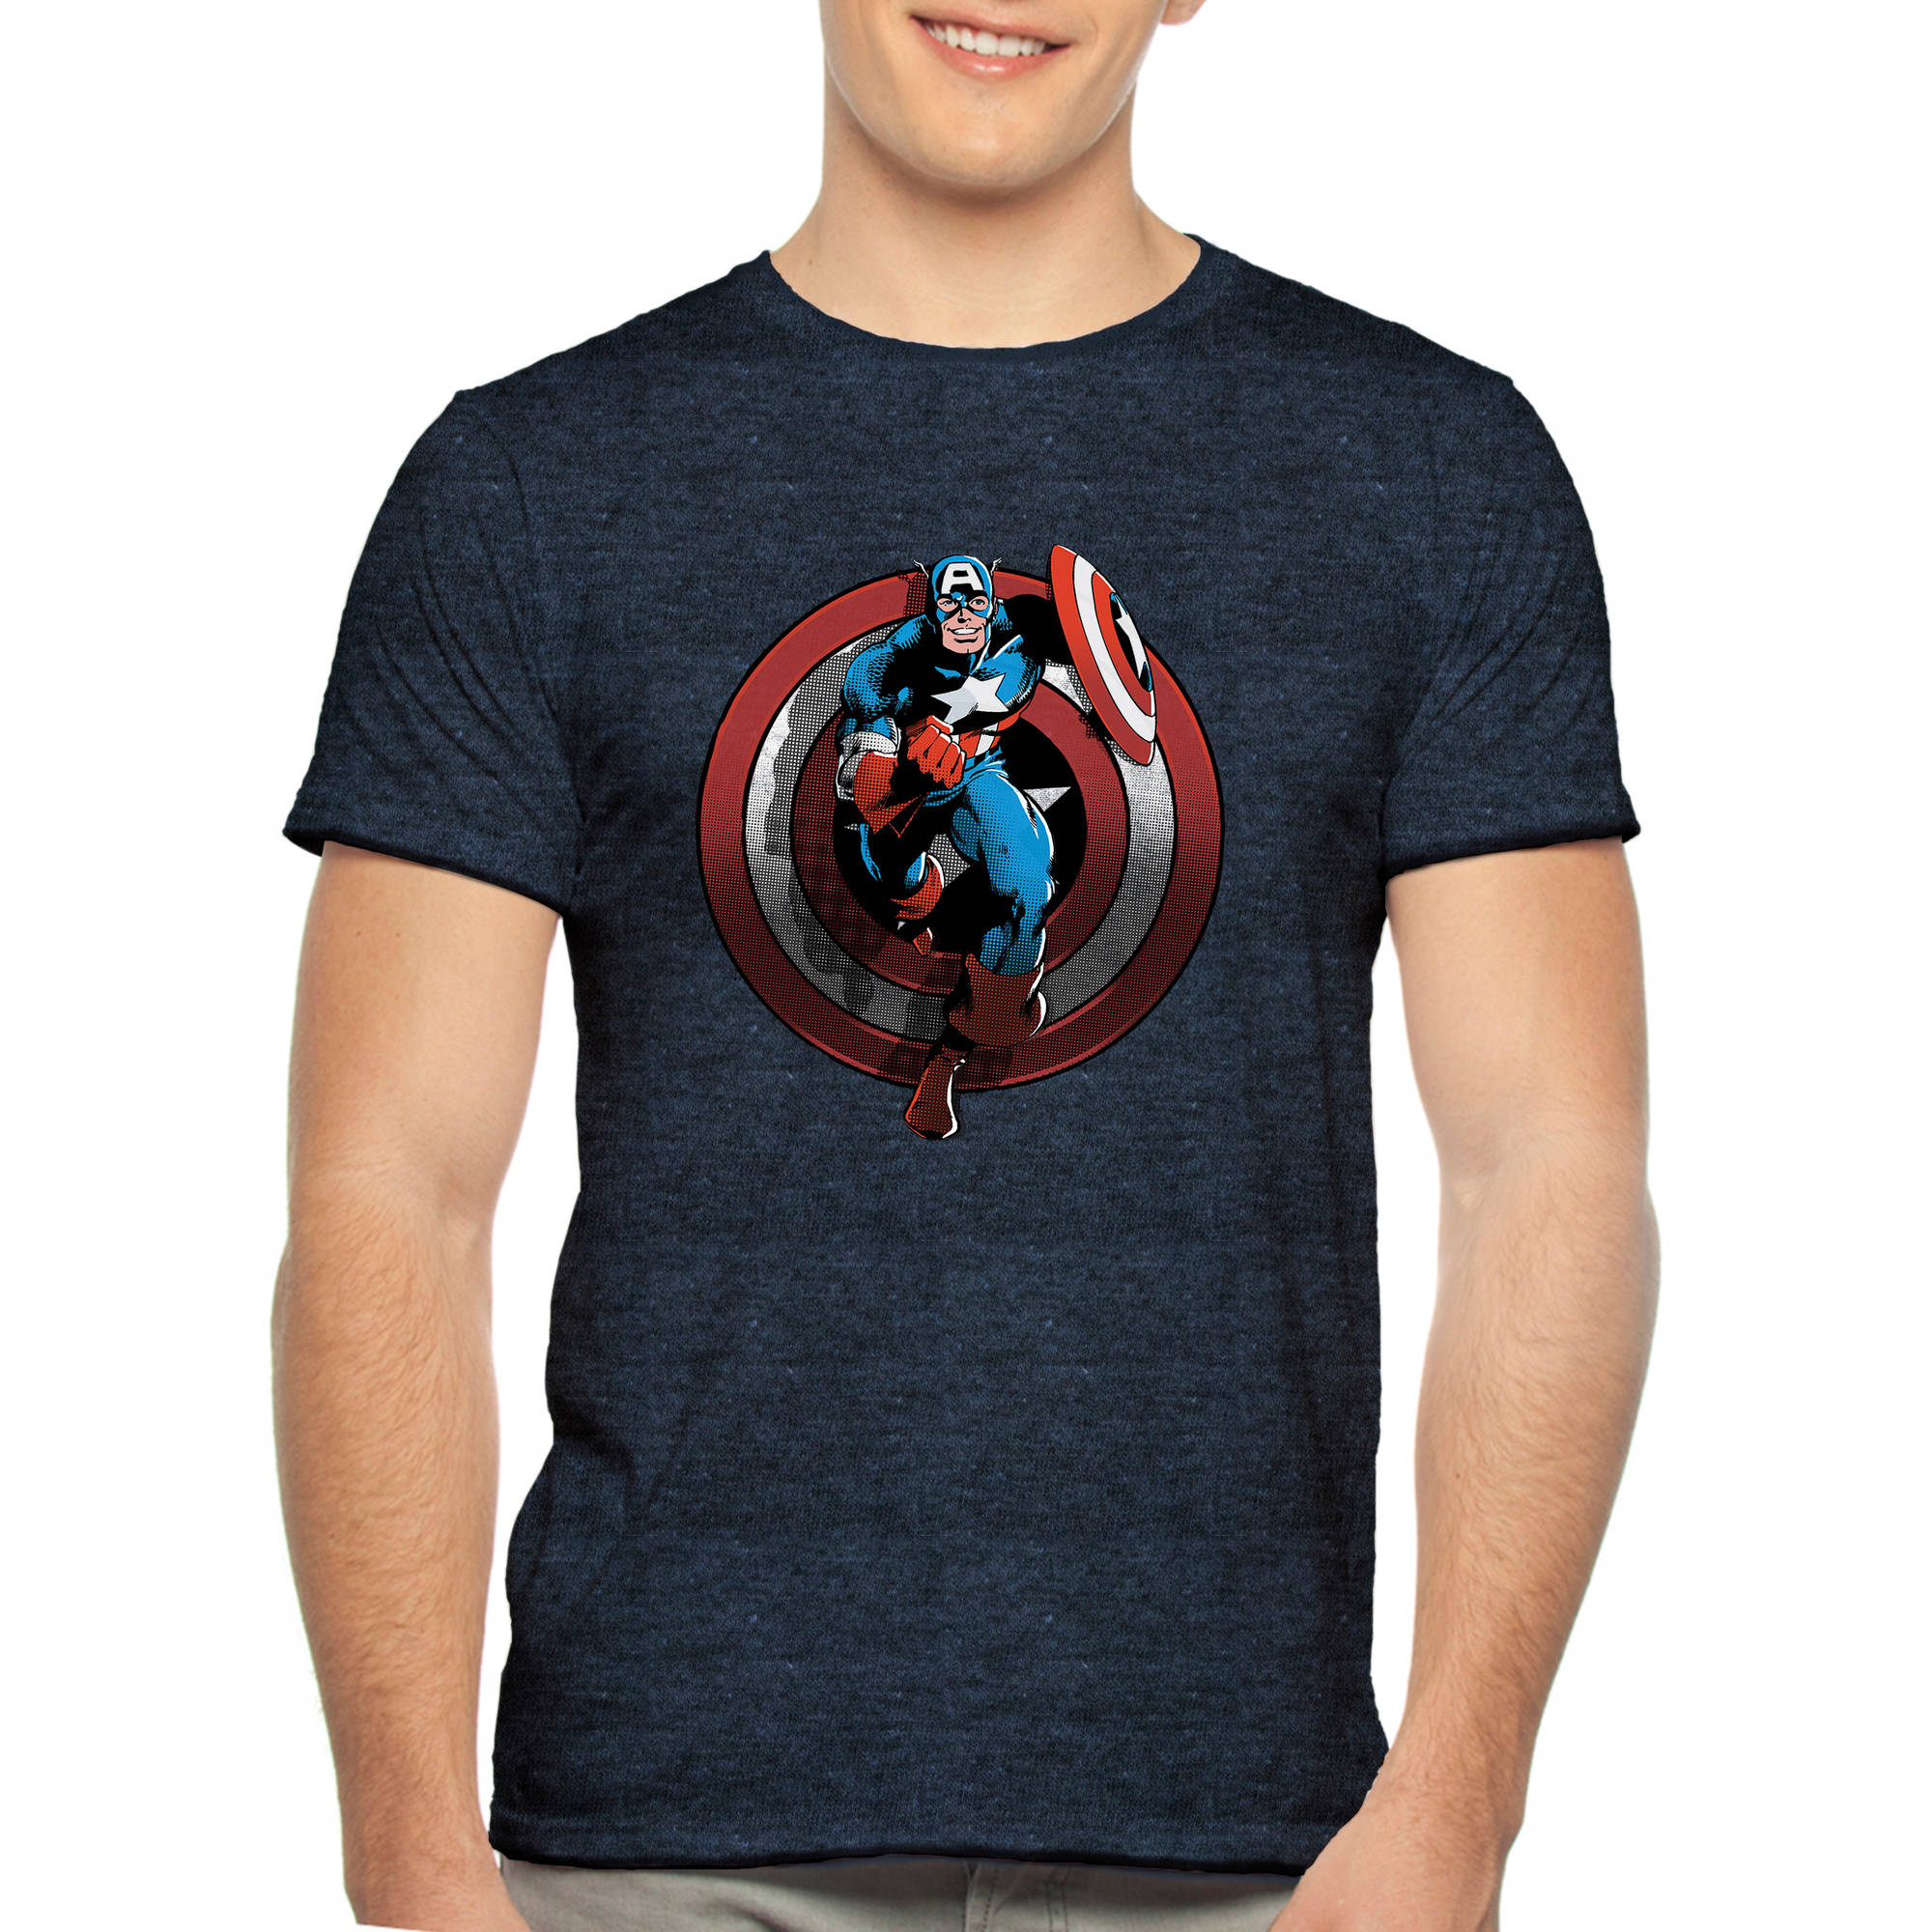 Captain America on shield Men's graphic tee